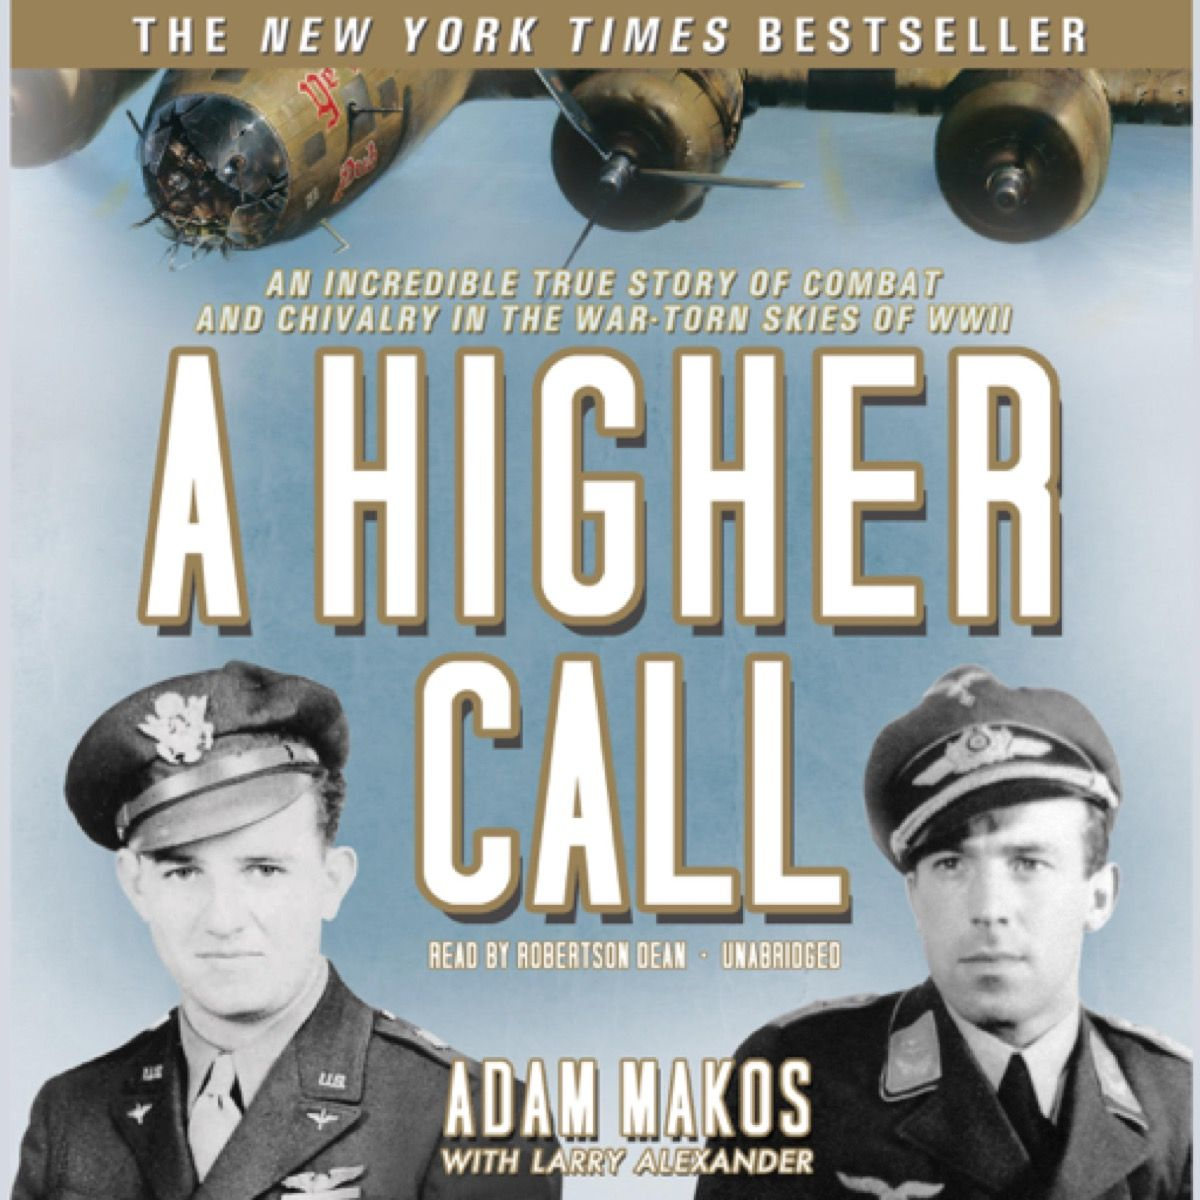 A Higher Call An Incredible True Story of Combat and